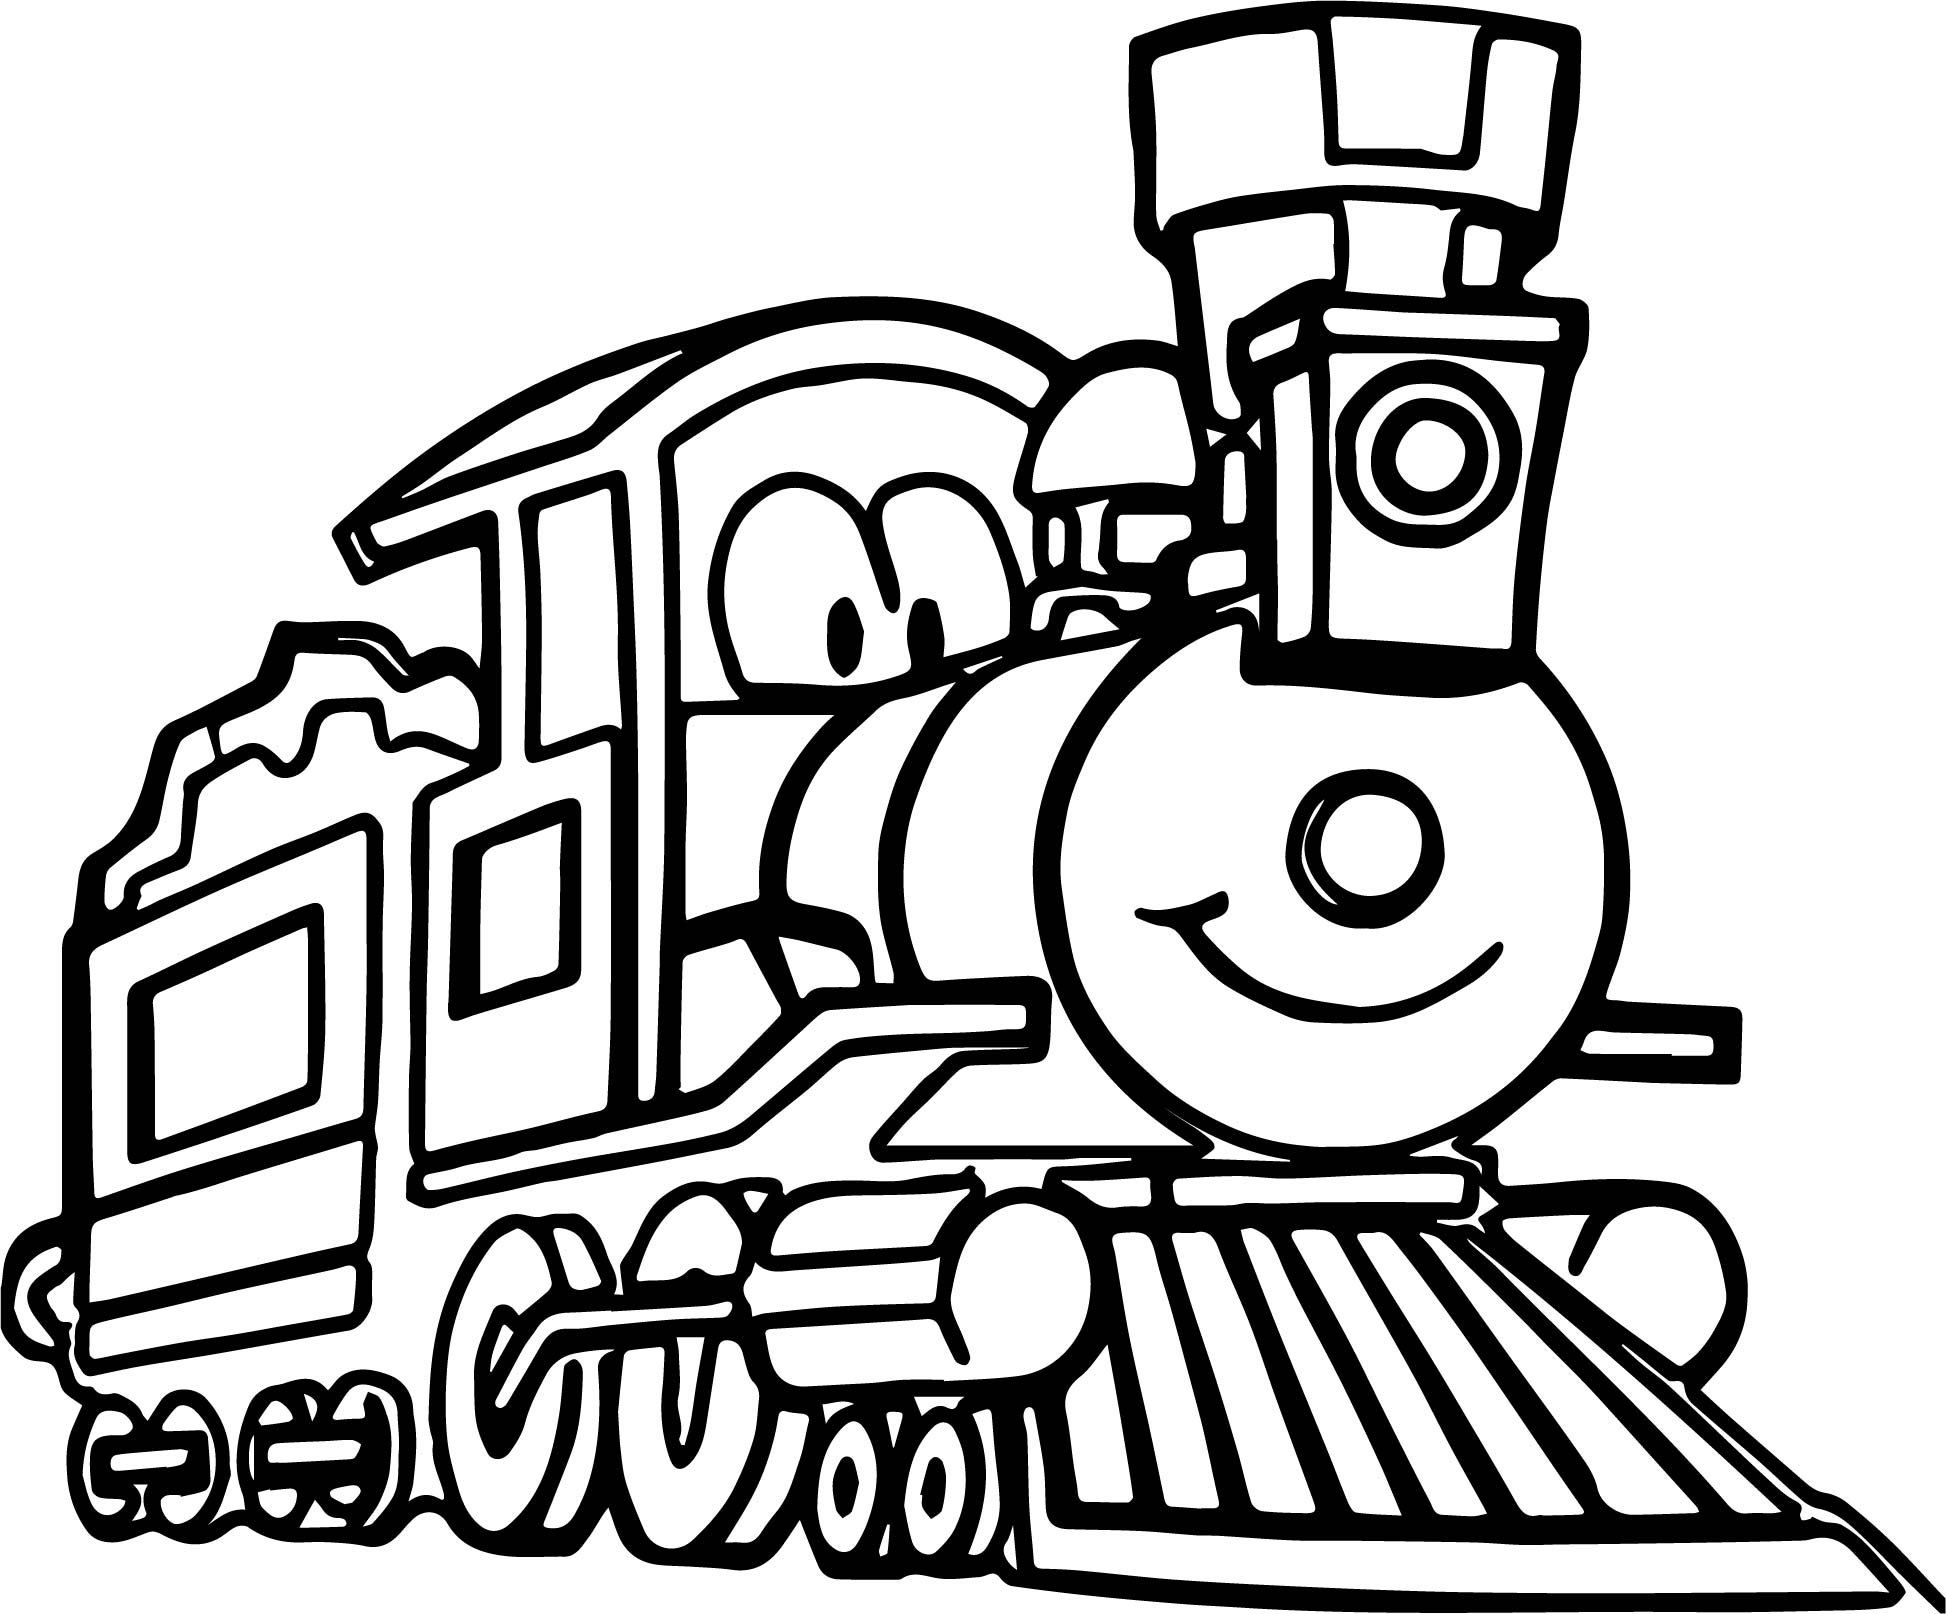 train coloring pages printable free printable train coloring pages for kids cool2bkids coloring printable train pages